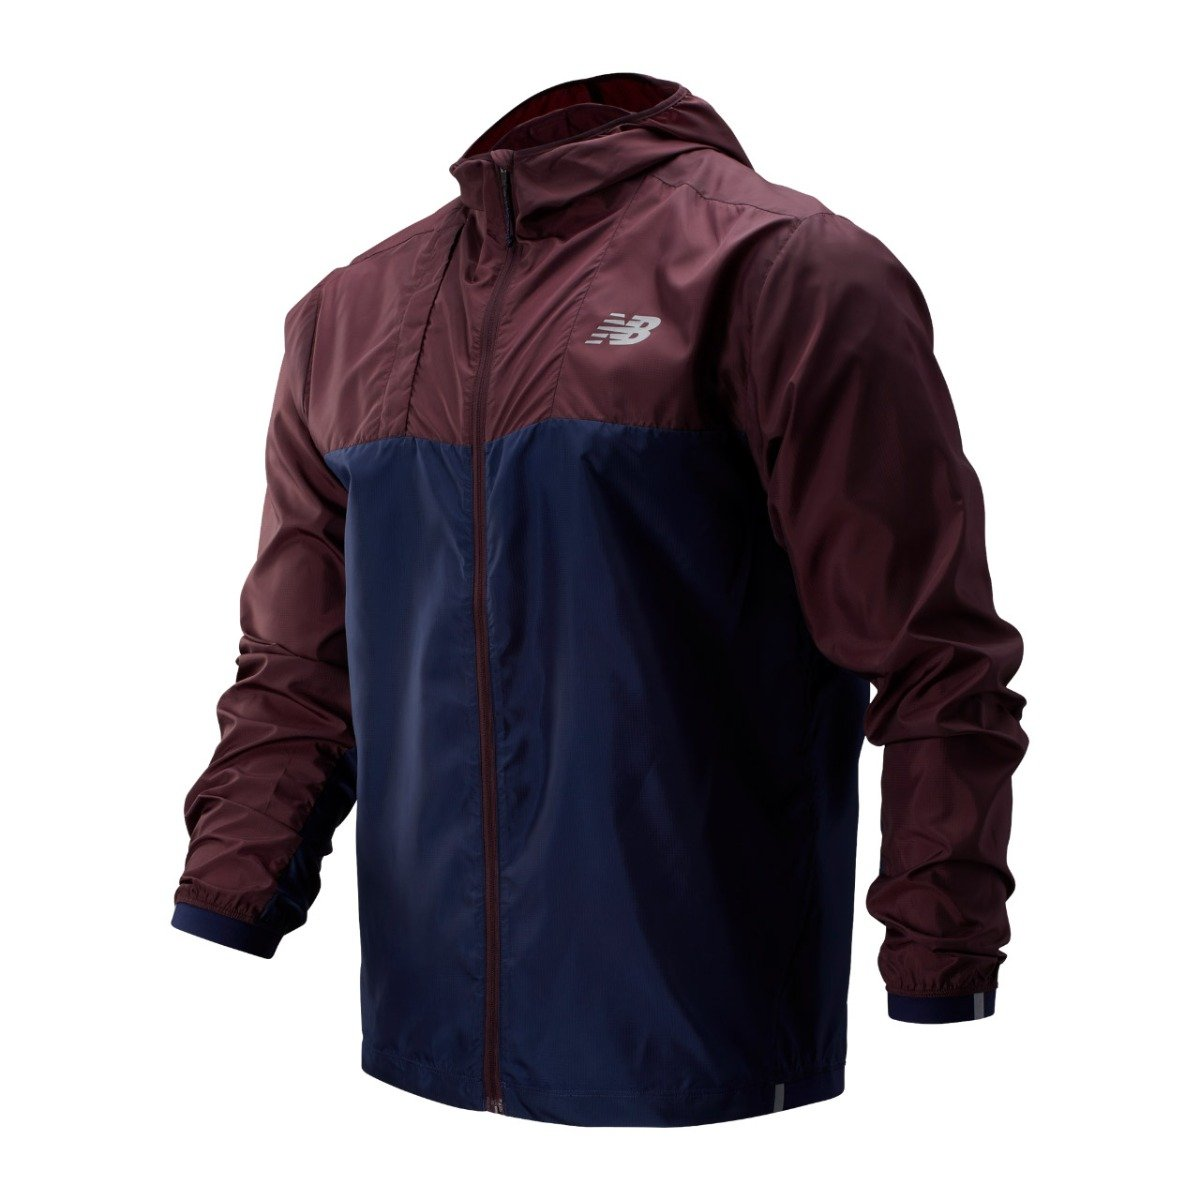 New Balance Light Packjacket 2.0 herre